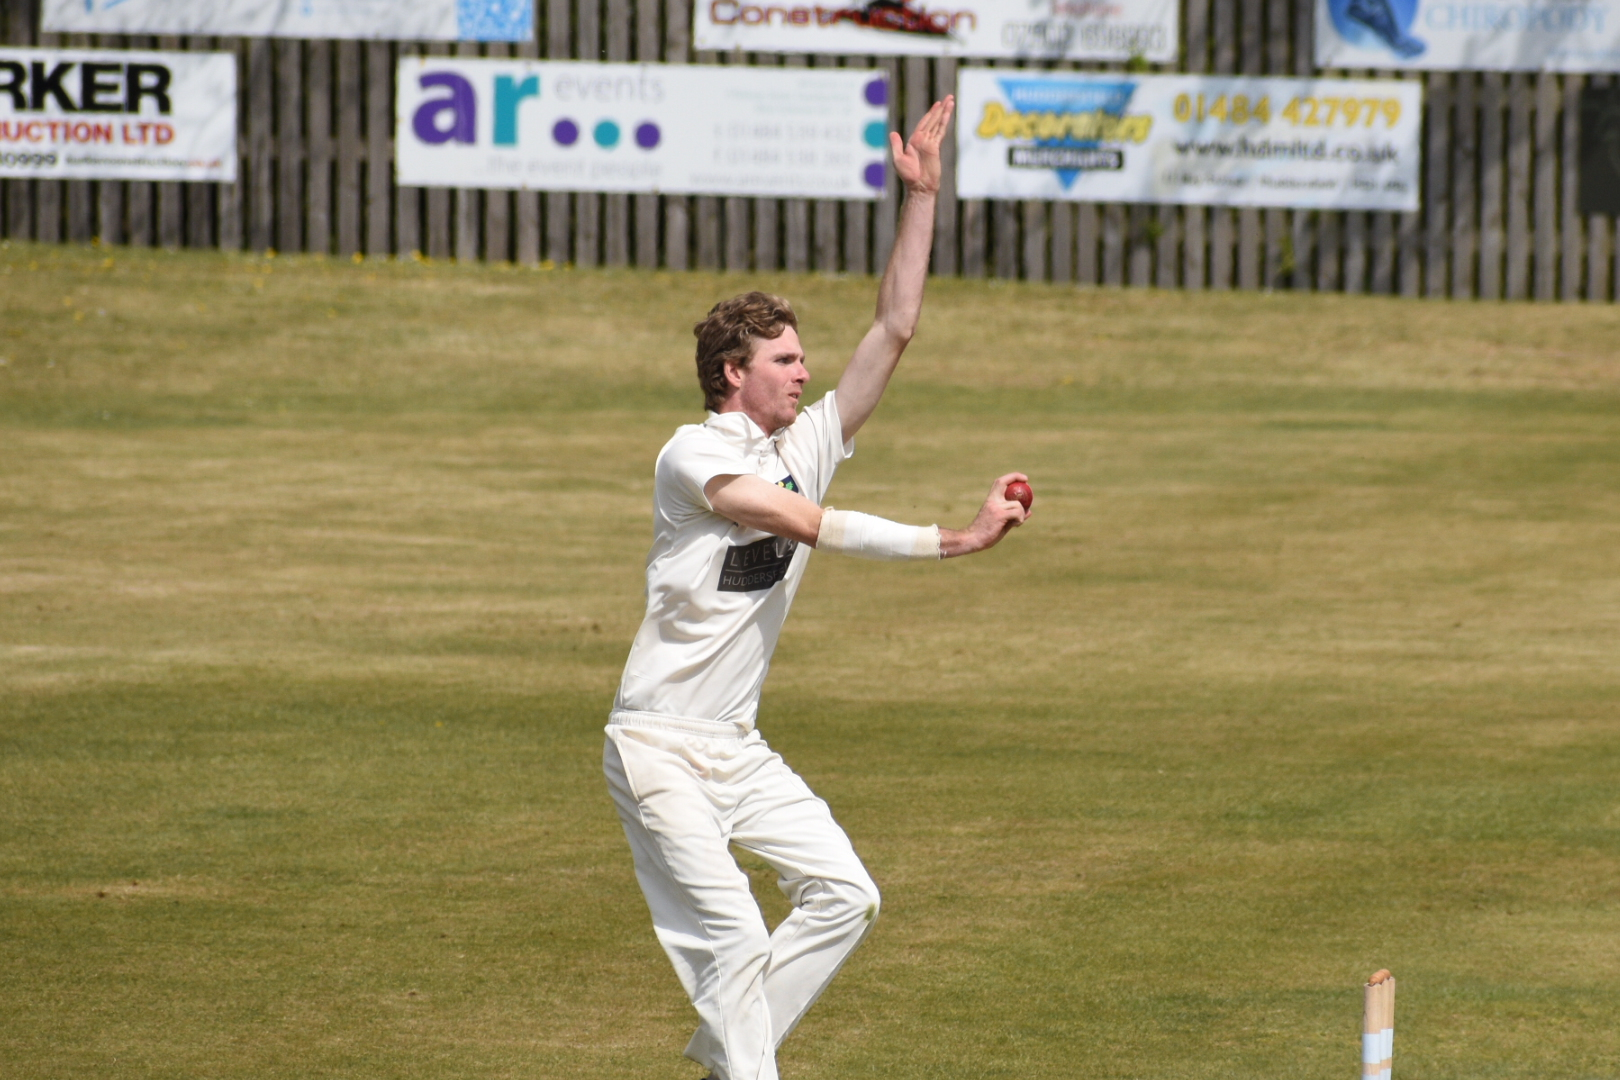 Thongsbridge Move Clear In Decider - Premiership Day 4 Review